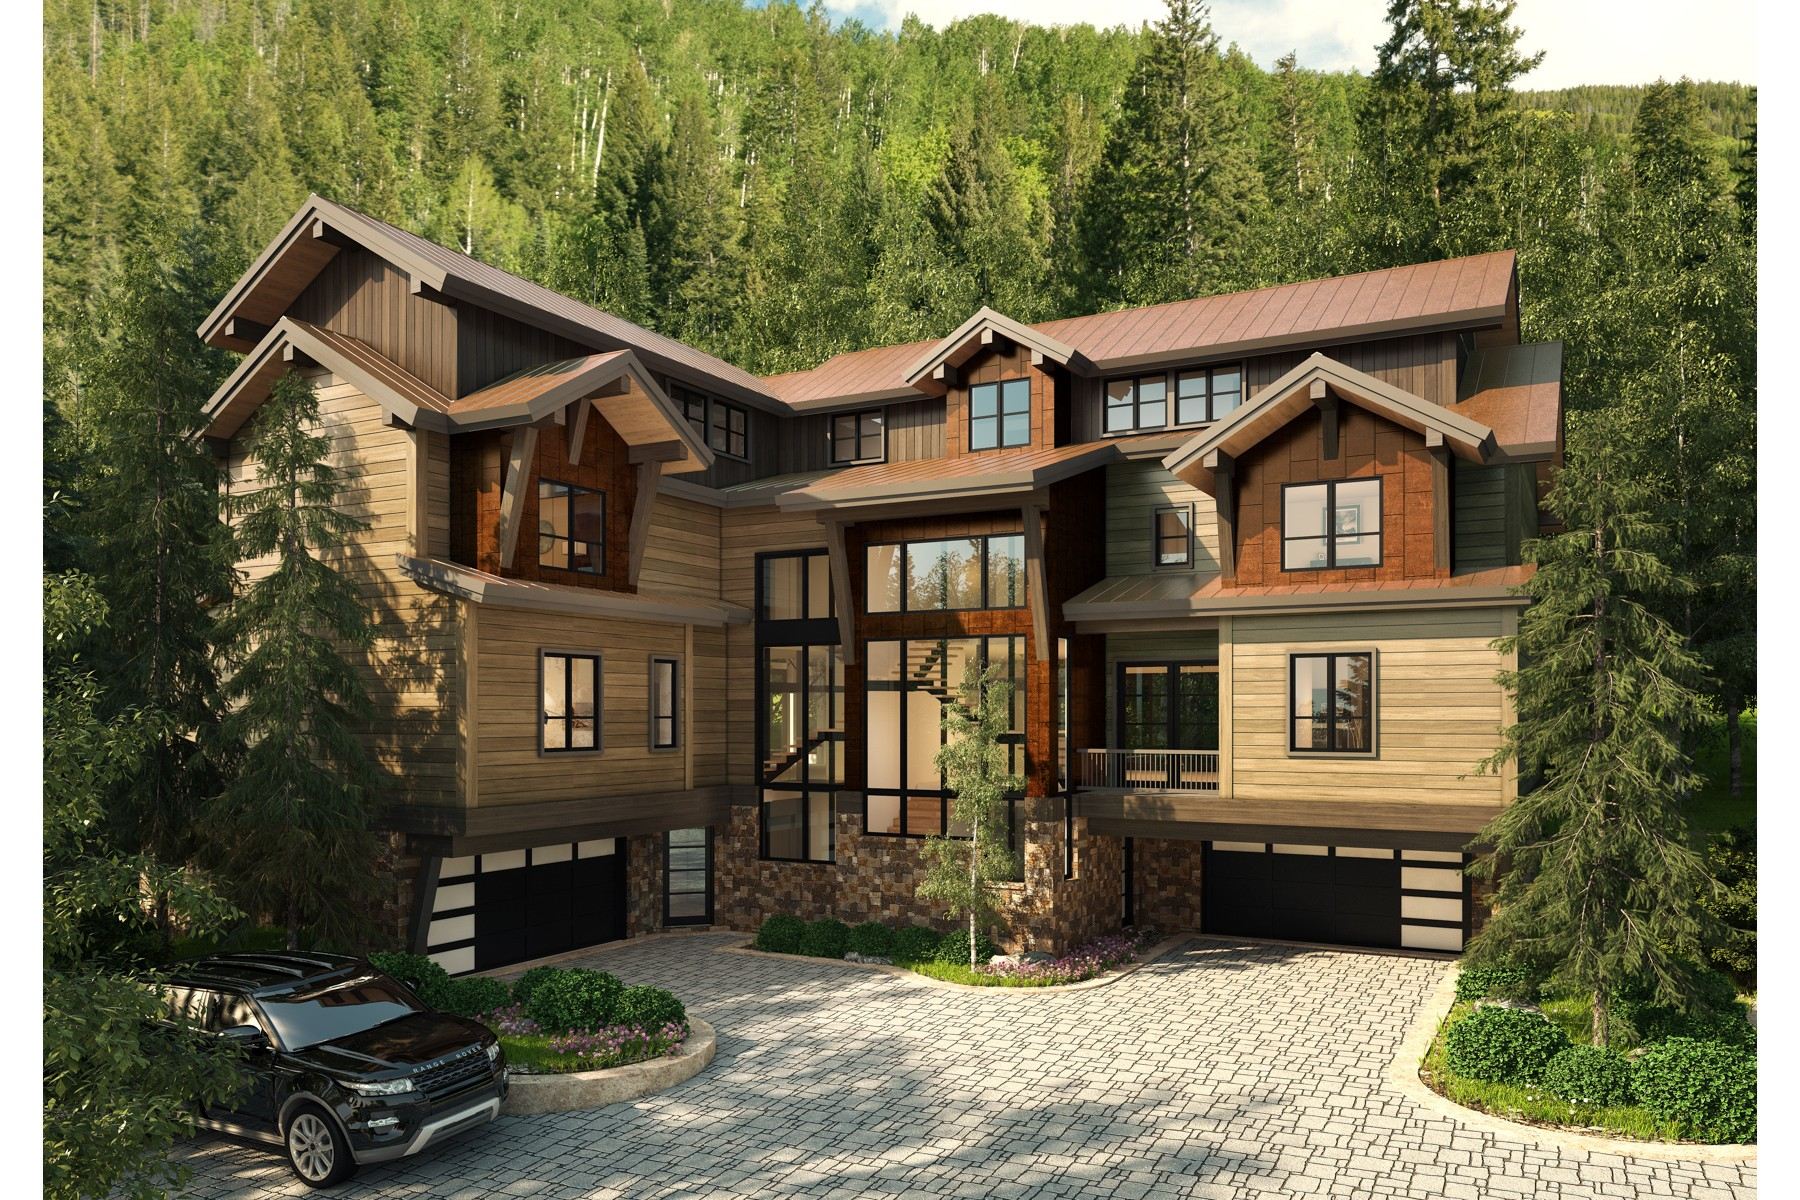 Property for Active at Peregrine Villas 189 Elk Track Road Beaver Creek, Colorado 81620 United States